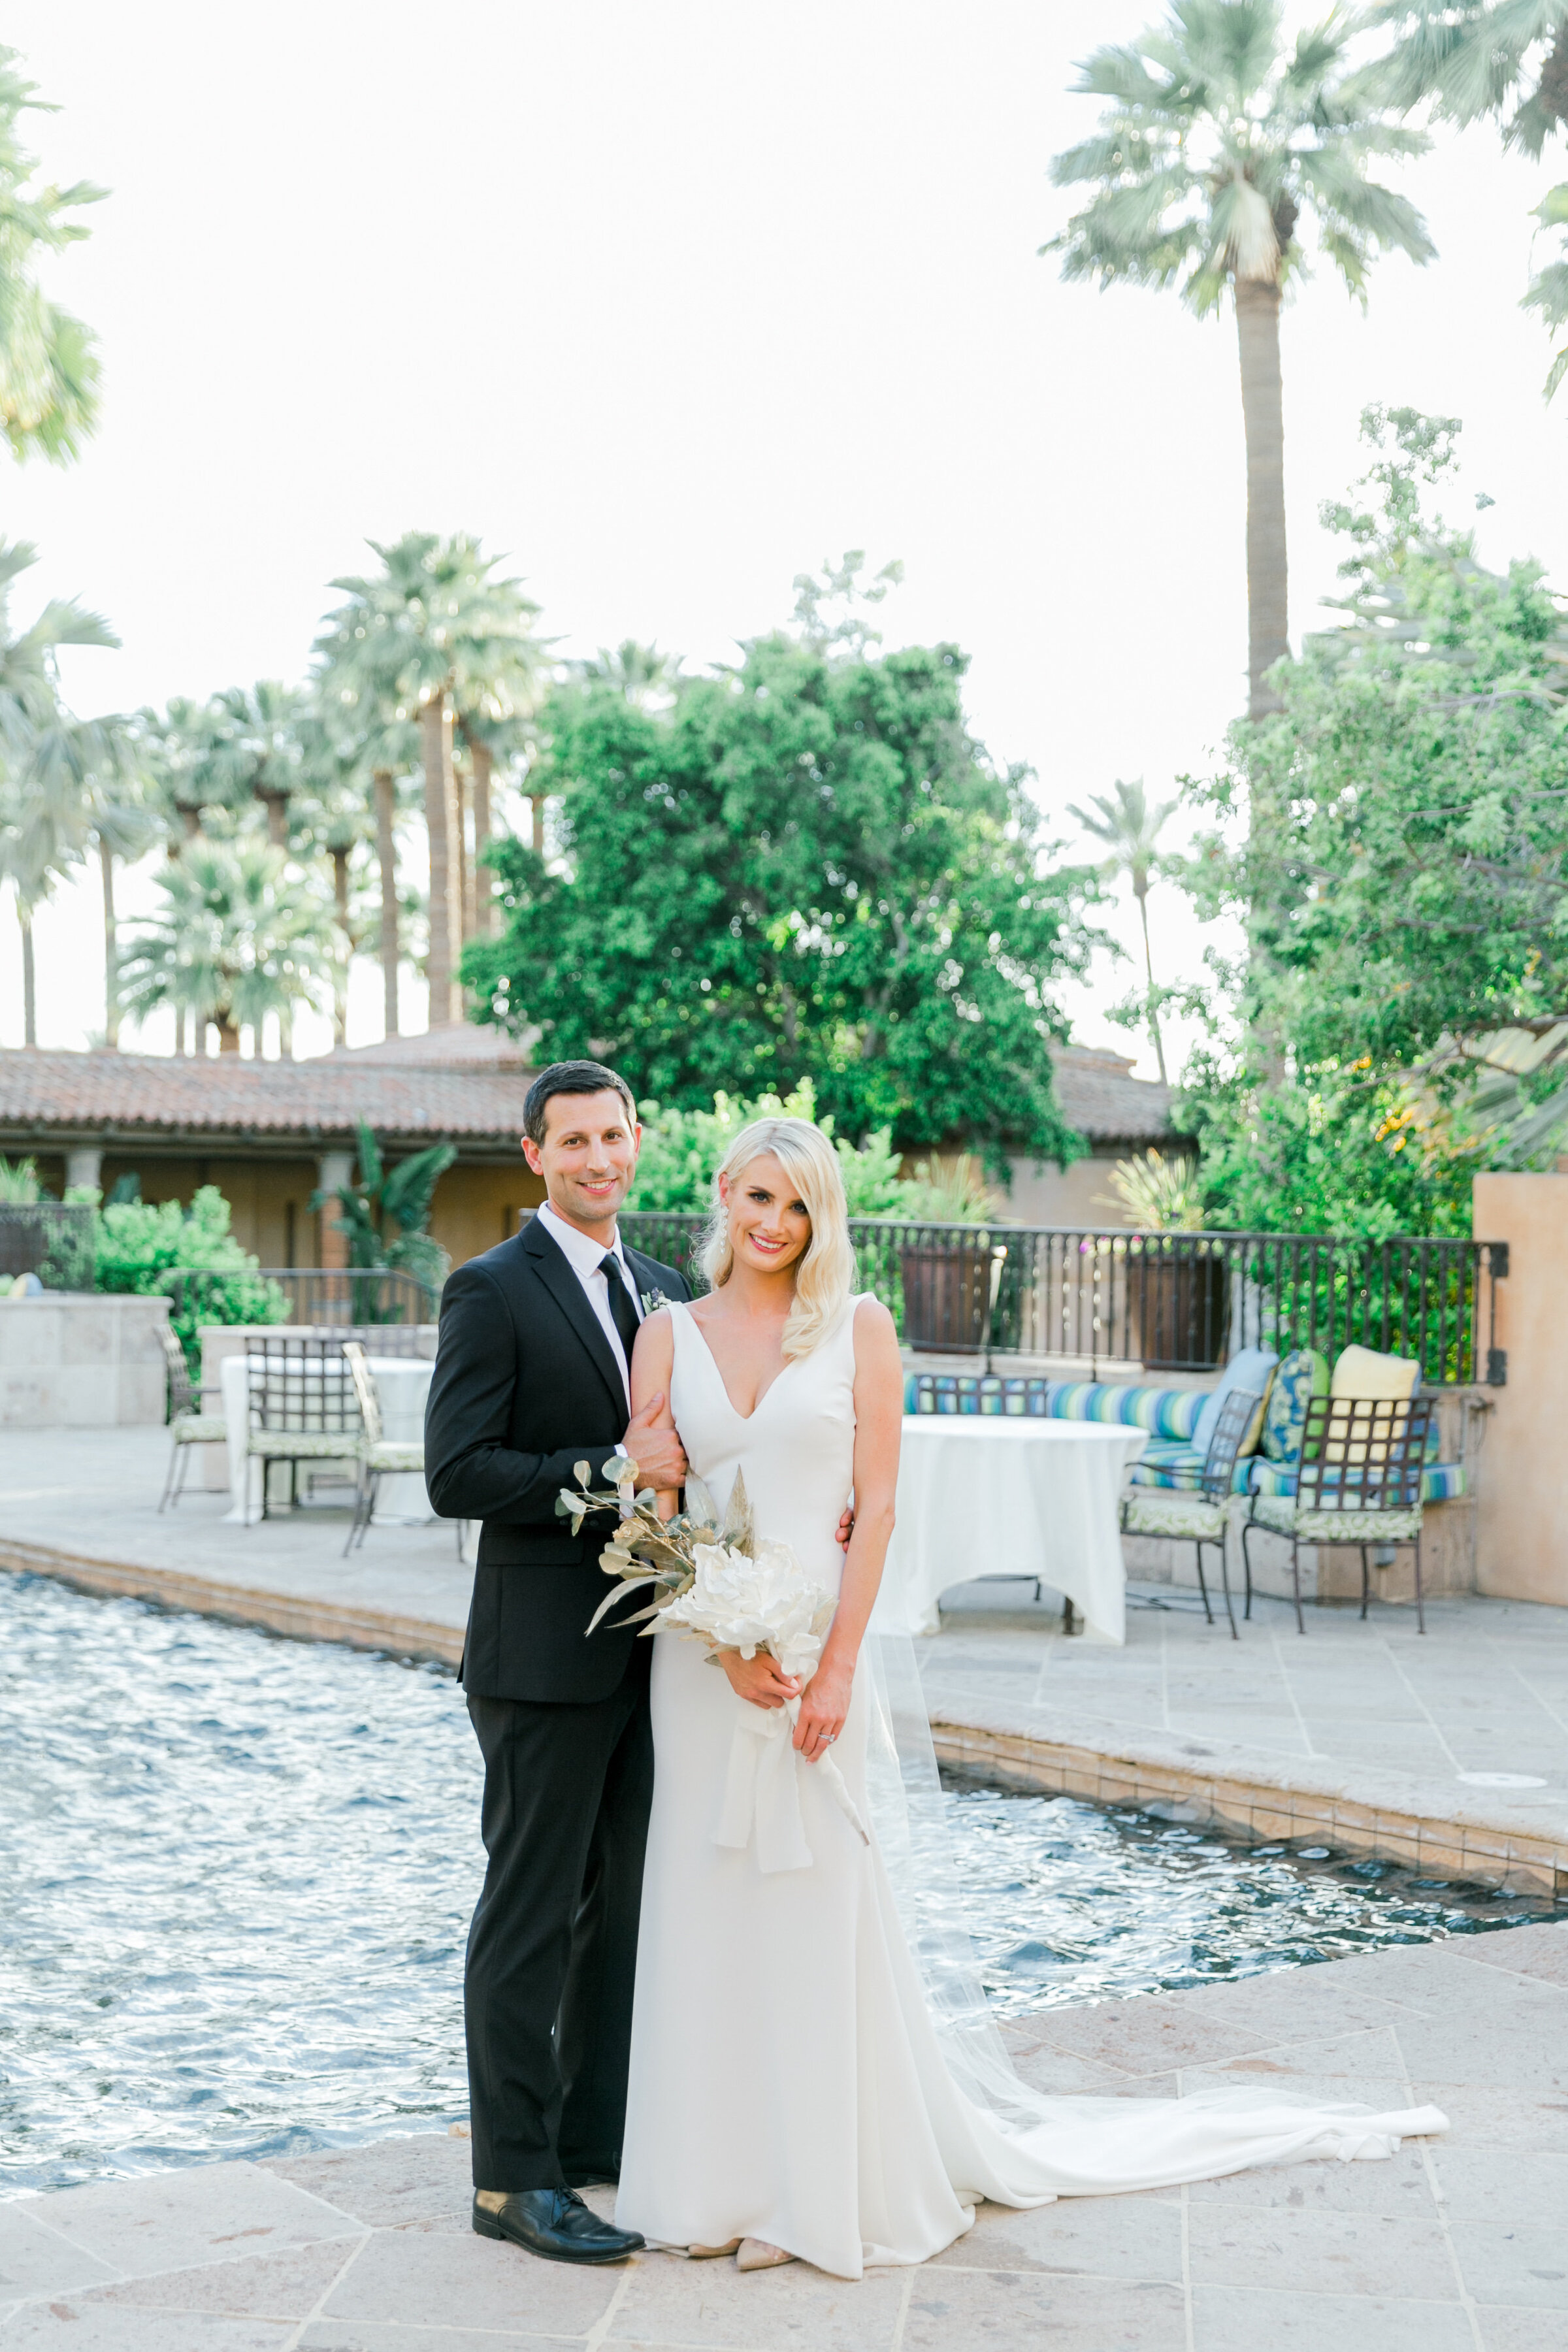 Karlie Colleen Photography - Arizona Wedding - Royal Palms Resort- Alex & Alex-149